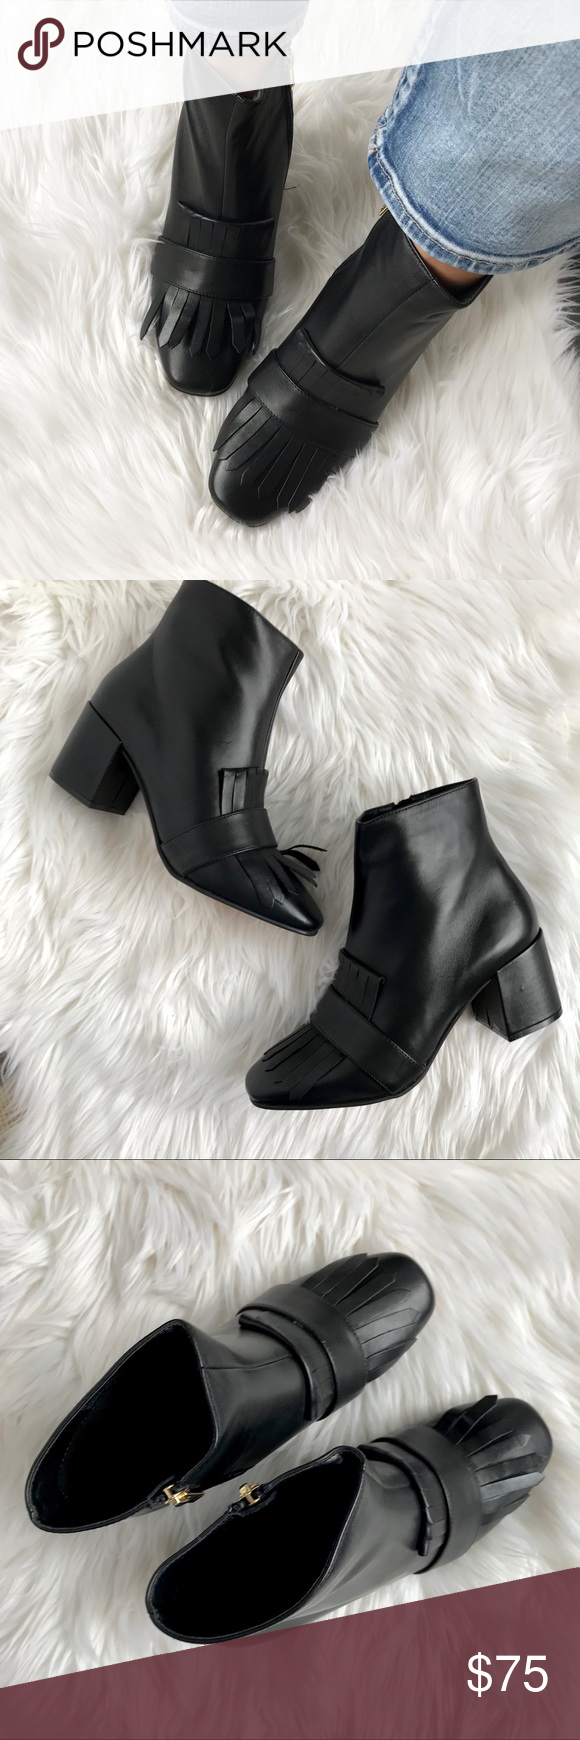 d00c01fe464 Steven by Steve Madden Black shooter kiltie bootie Steven by Steve Madden  Black shooter kiltie bootie. Size 8 (True to size) Square toe. Kilted vamp.